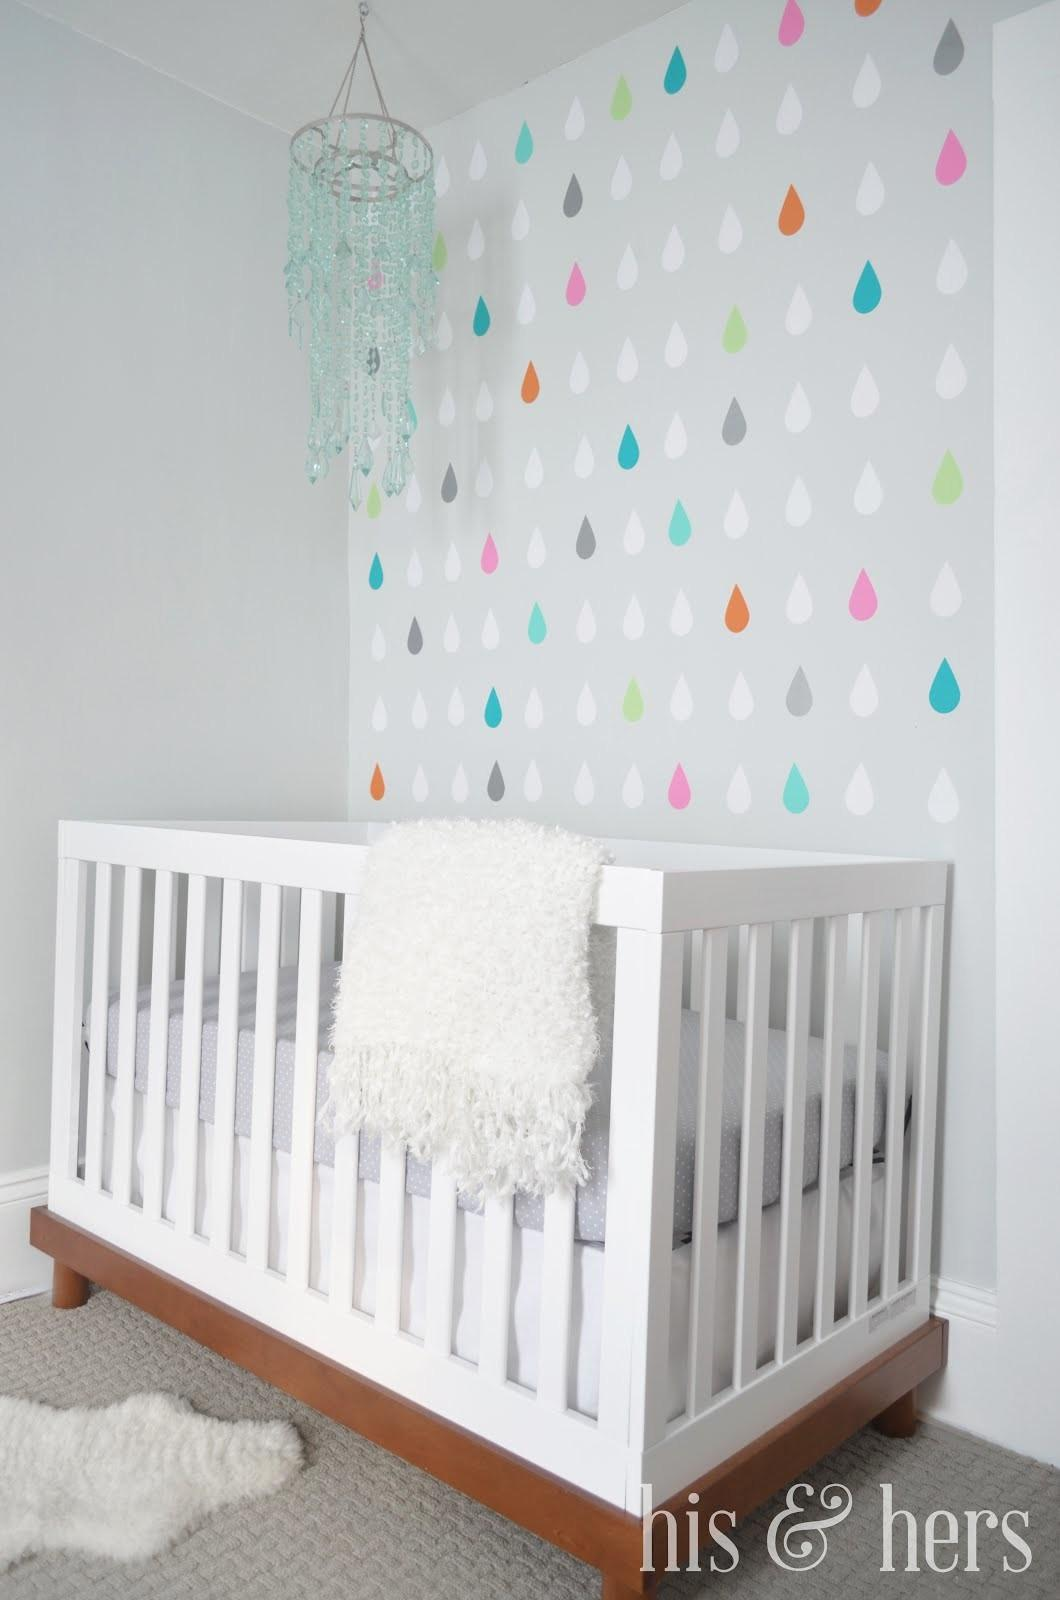 His Hers Diy Colorful Raindrop Decals Nursery Accent